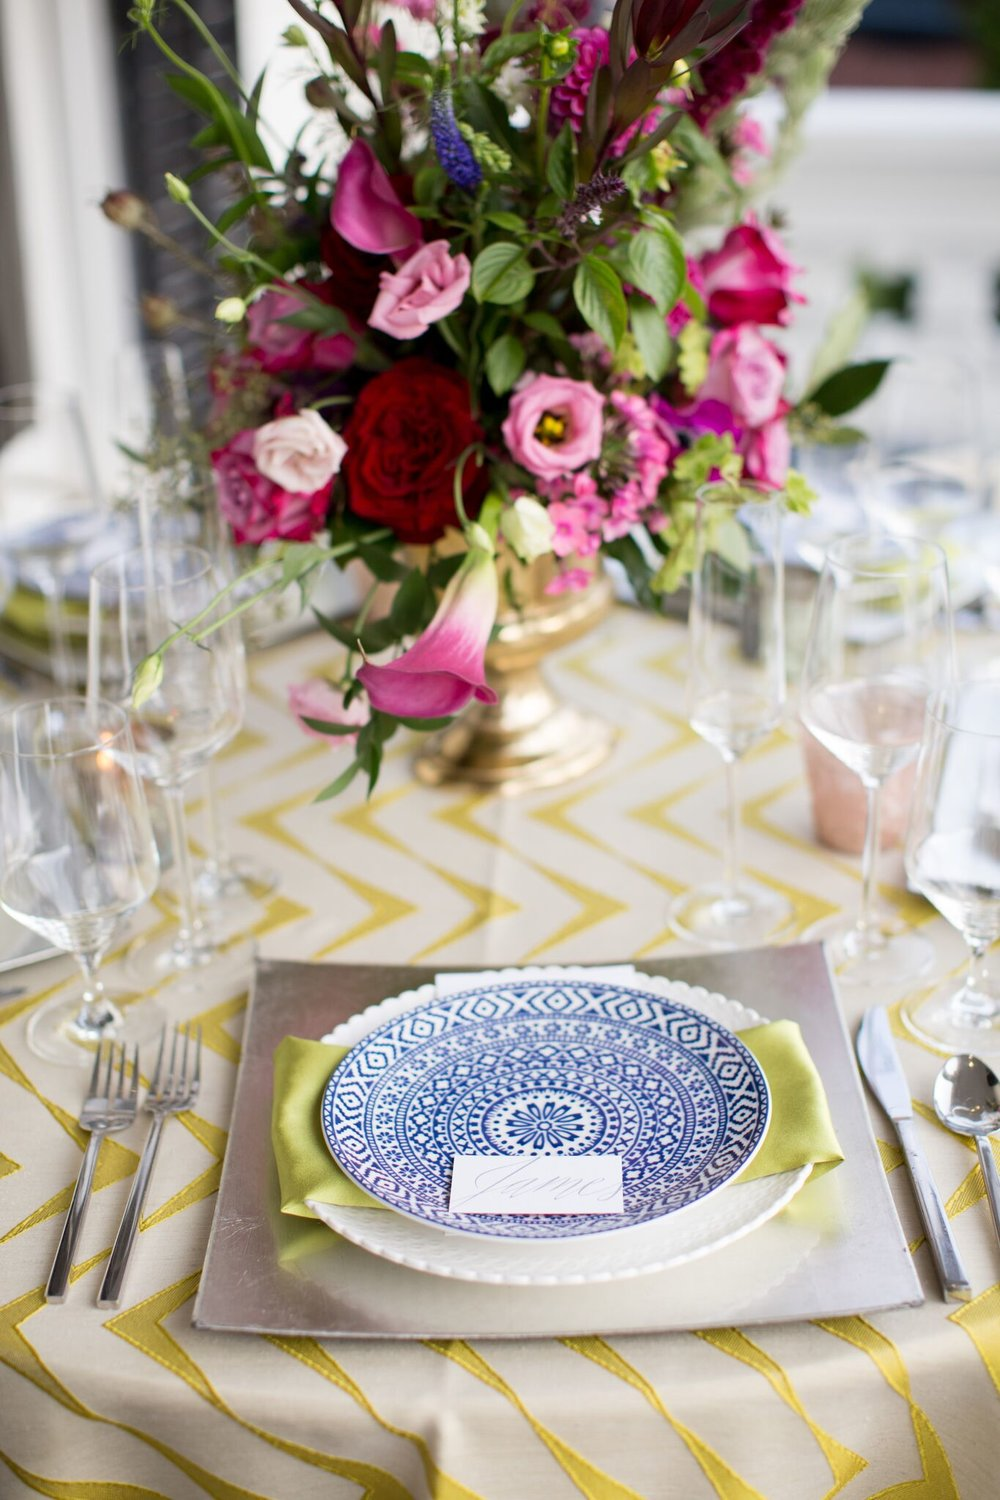 C & D EVENTS    ENGLISH GARDEN    PARTY REFLECTIONS    KATHERINE MILES JONES PHOTOGRAPHY